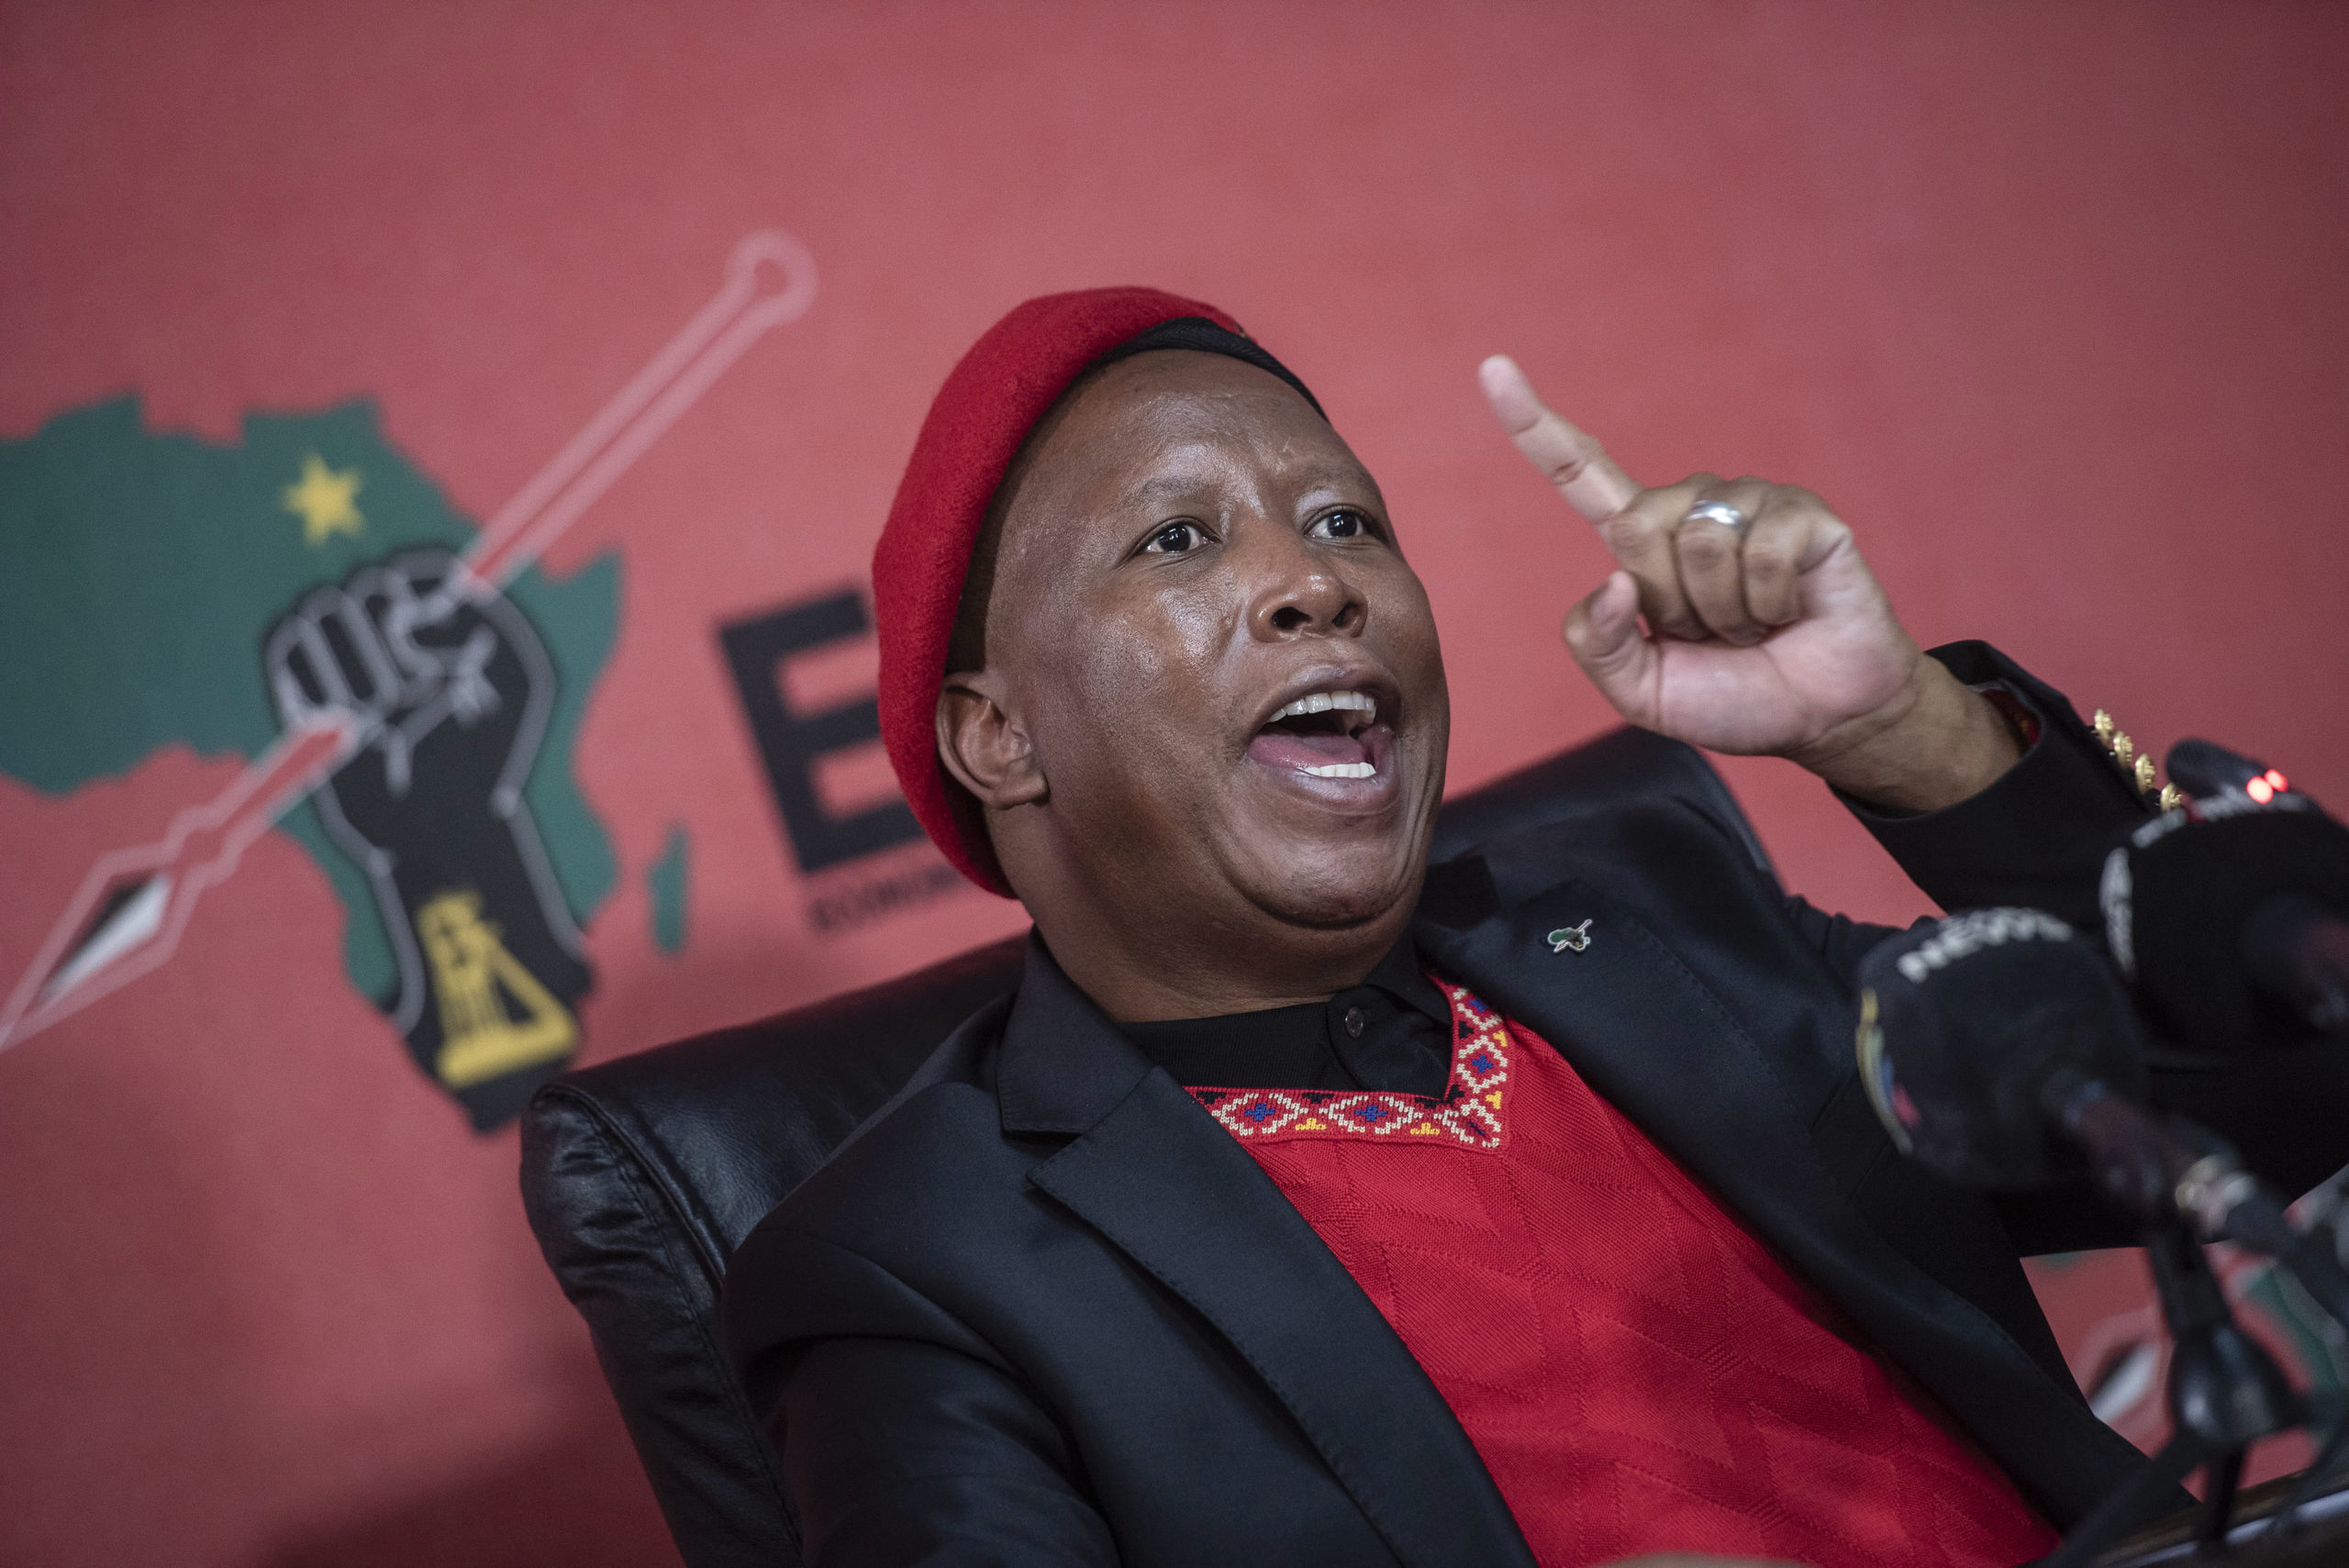 WATCH: 'Stay home. You're going to embarrass us' – Malema ahead of Cyril's G7 trip - The Citizen